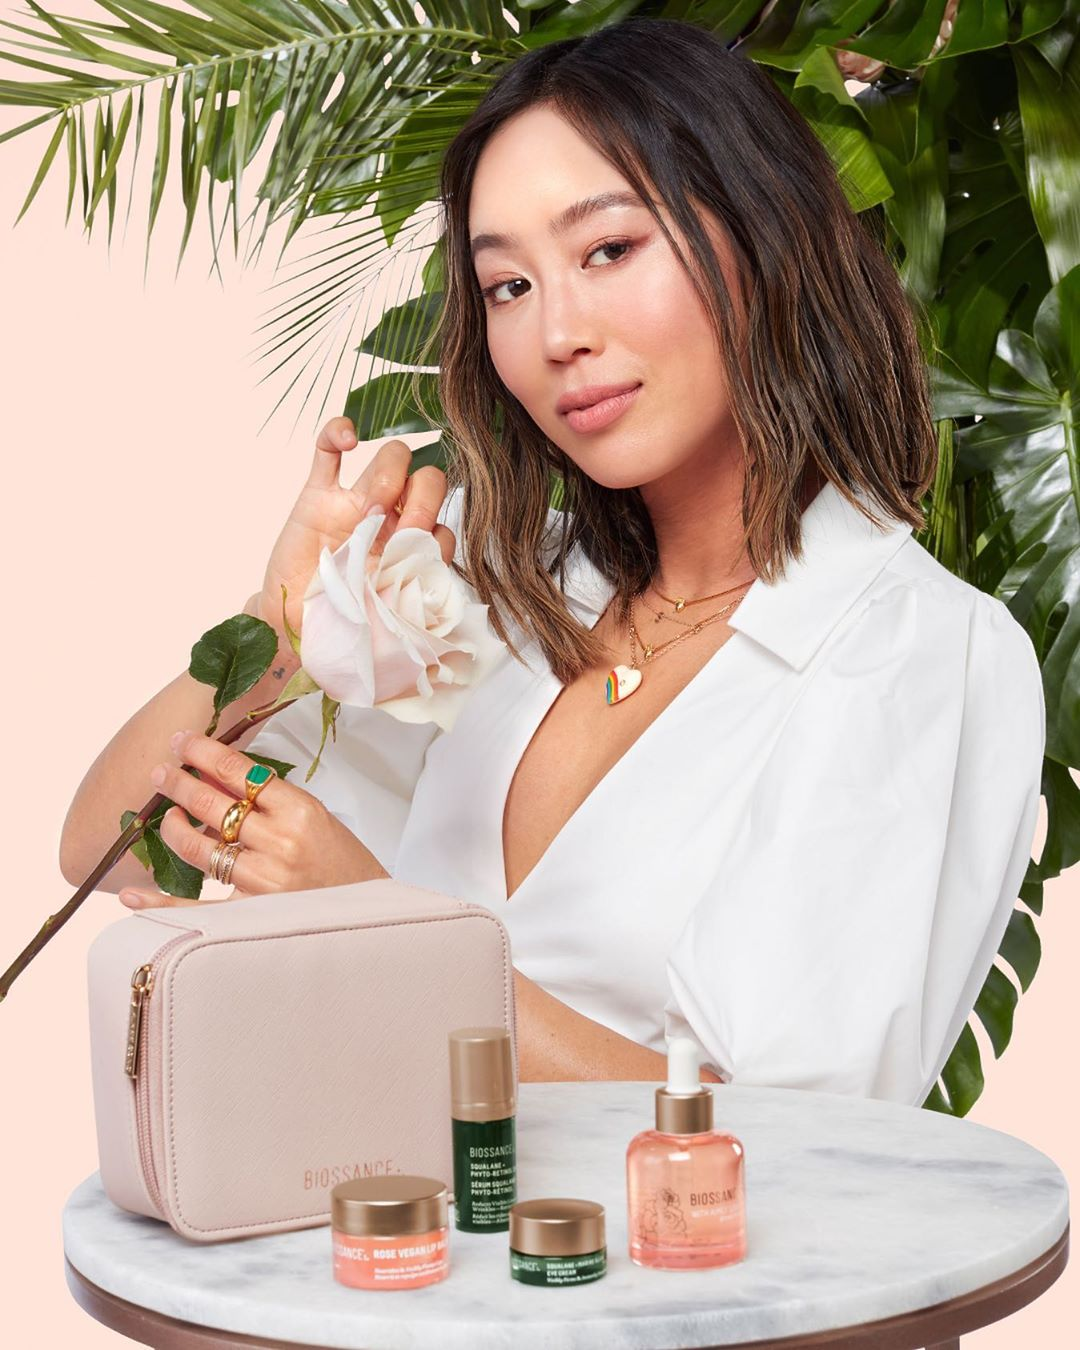 Aimee Song Teams Up With Biossance on Squalane + Vitamin C Rose Oil